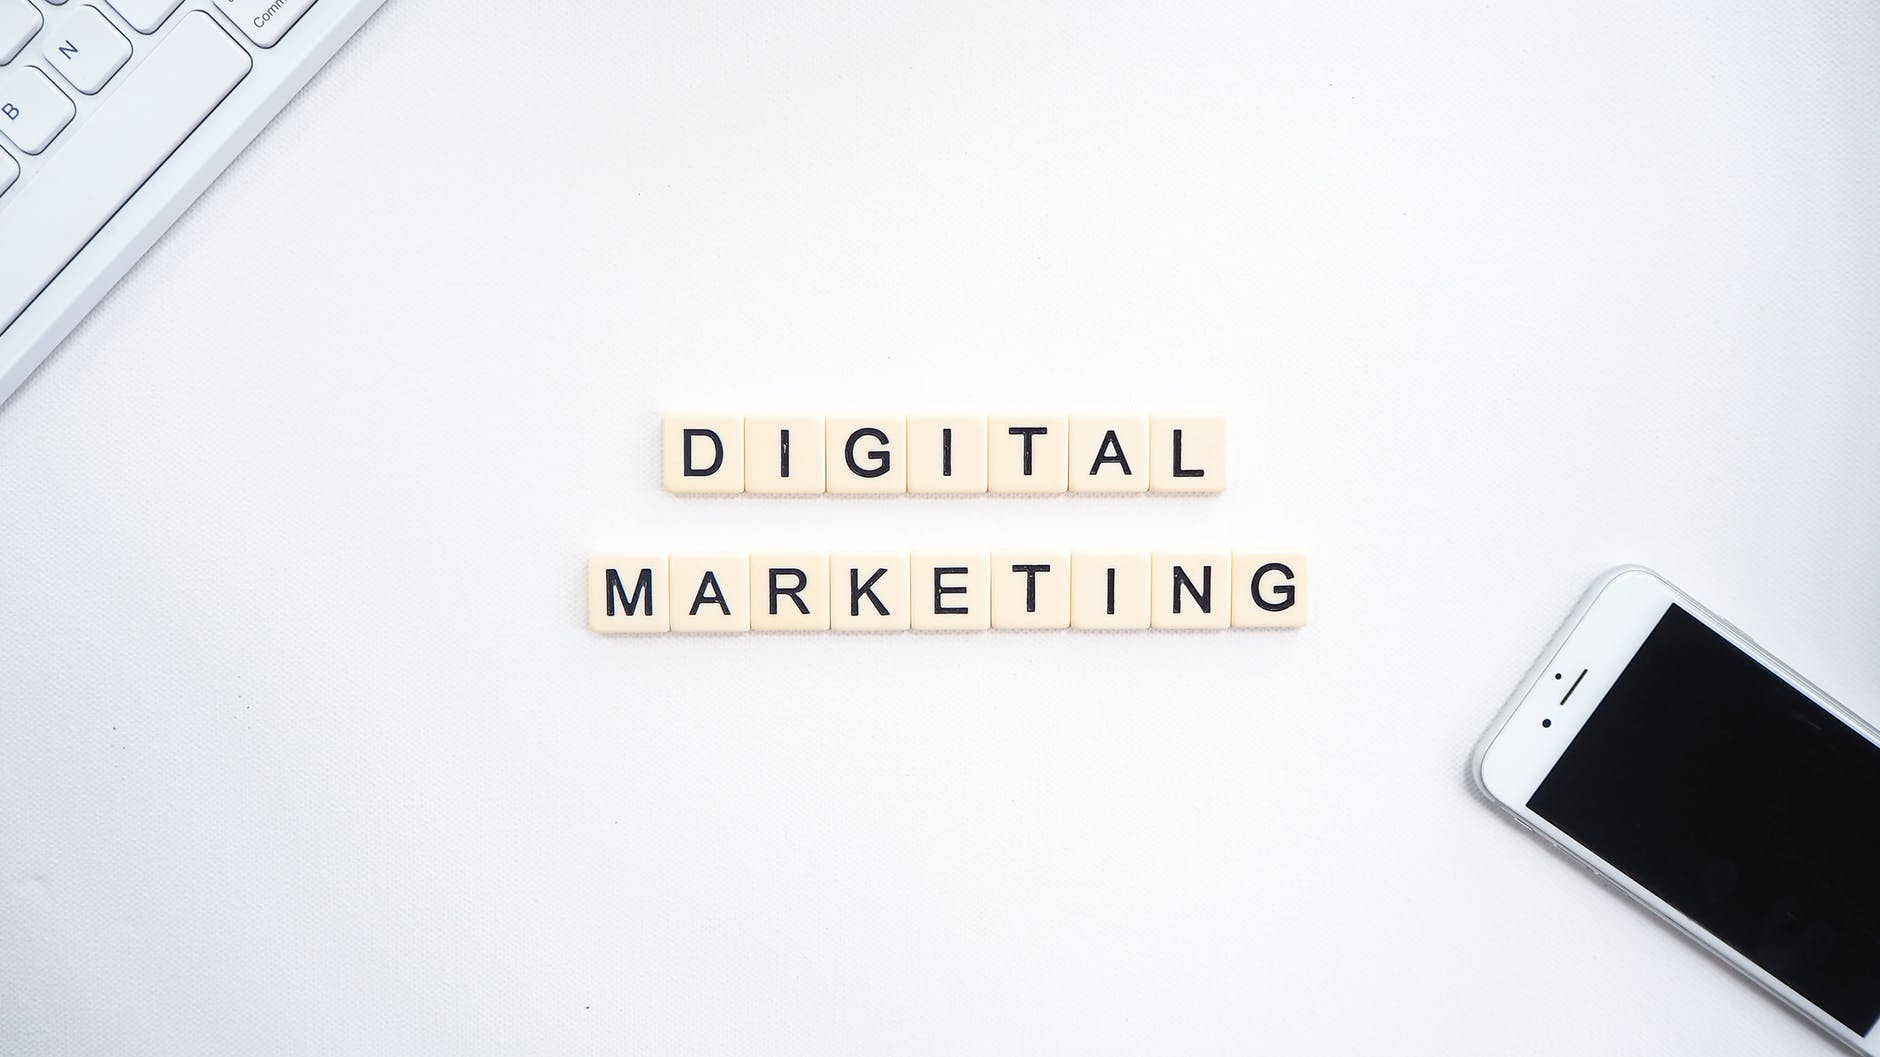 Digital Marketing spelled with blocks